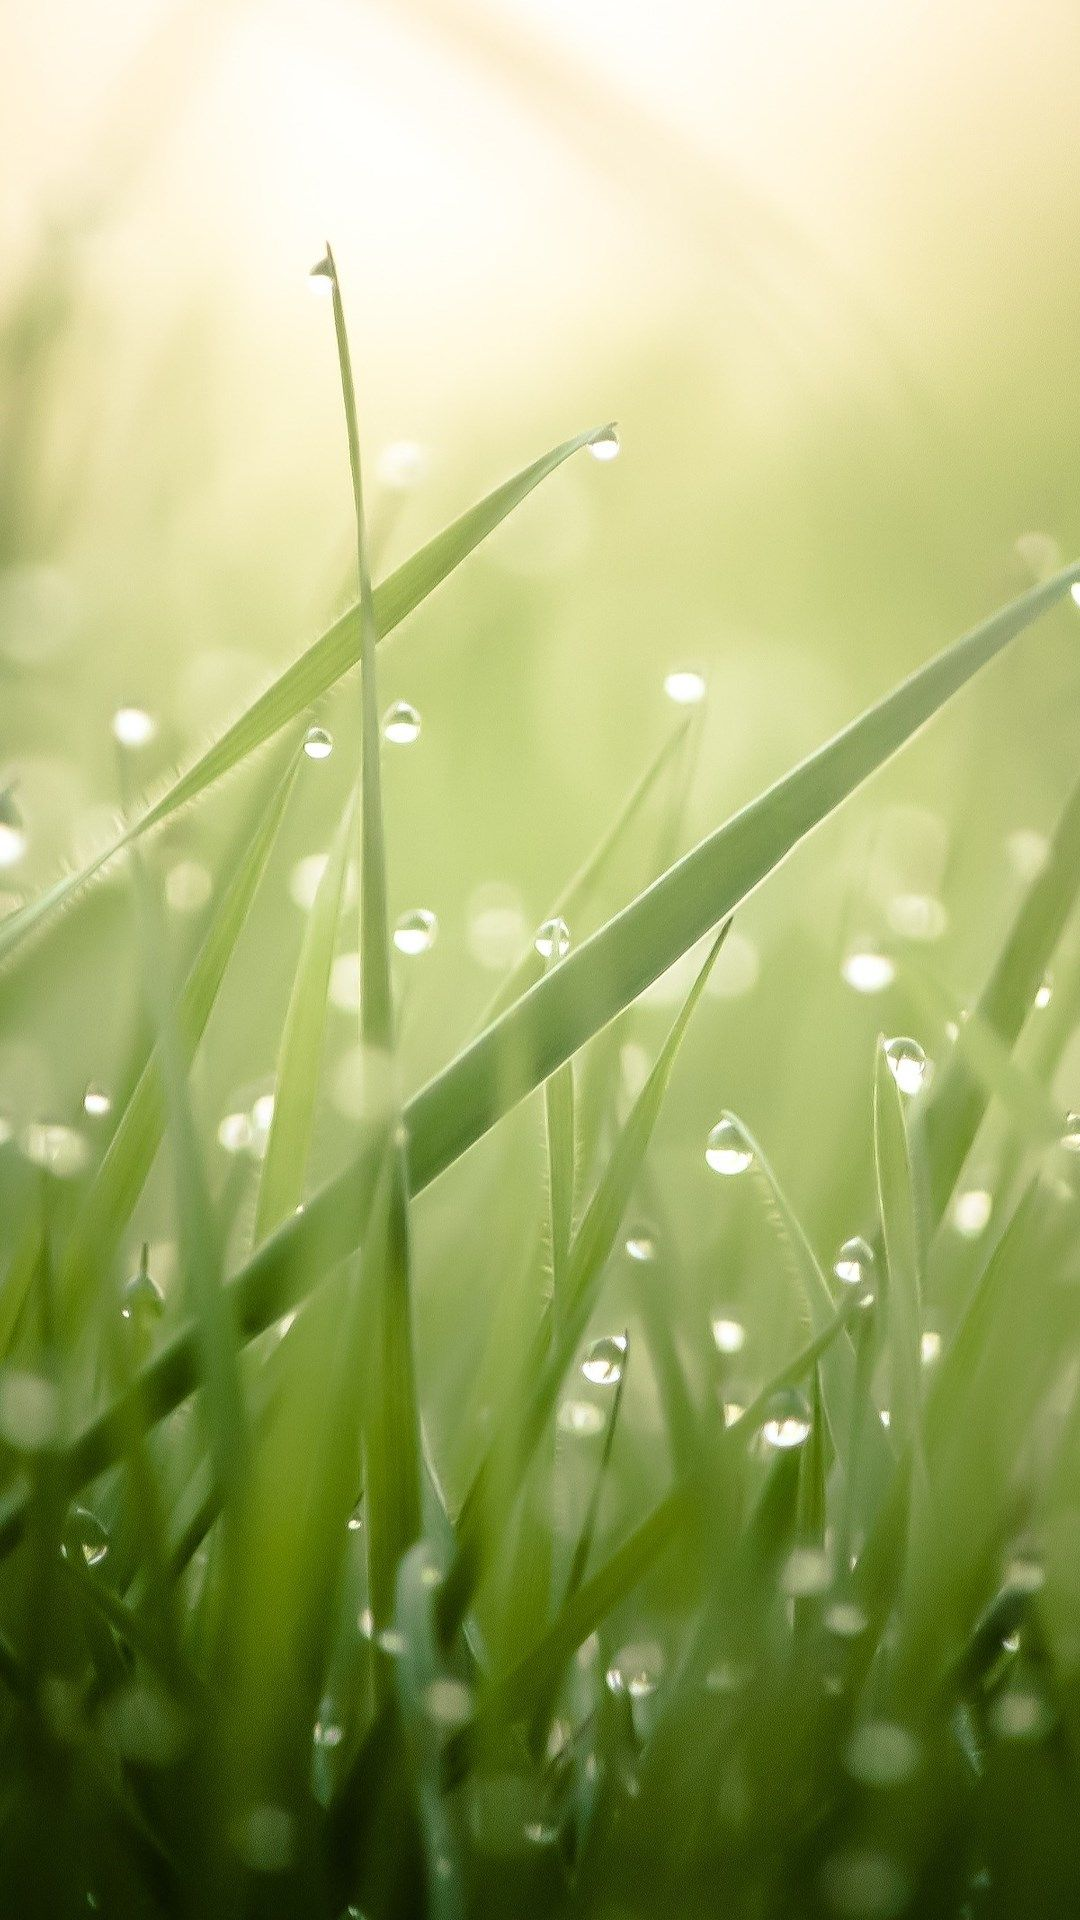 Water drop and grass. Pretty water drops/morning dews